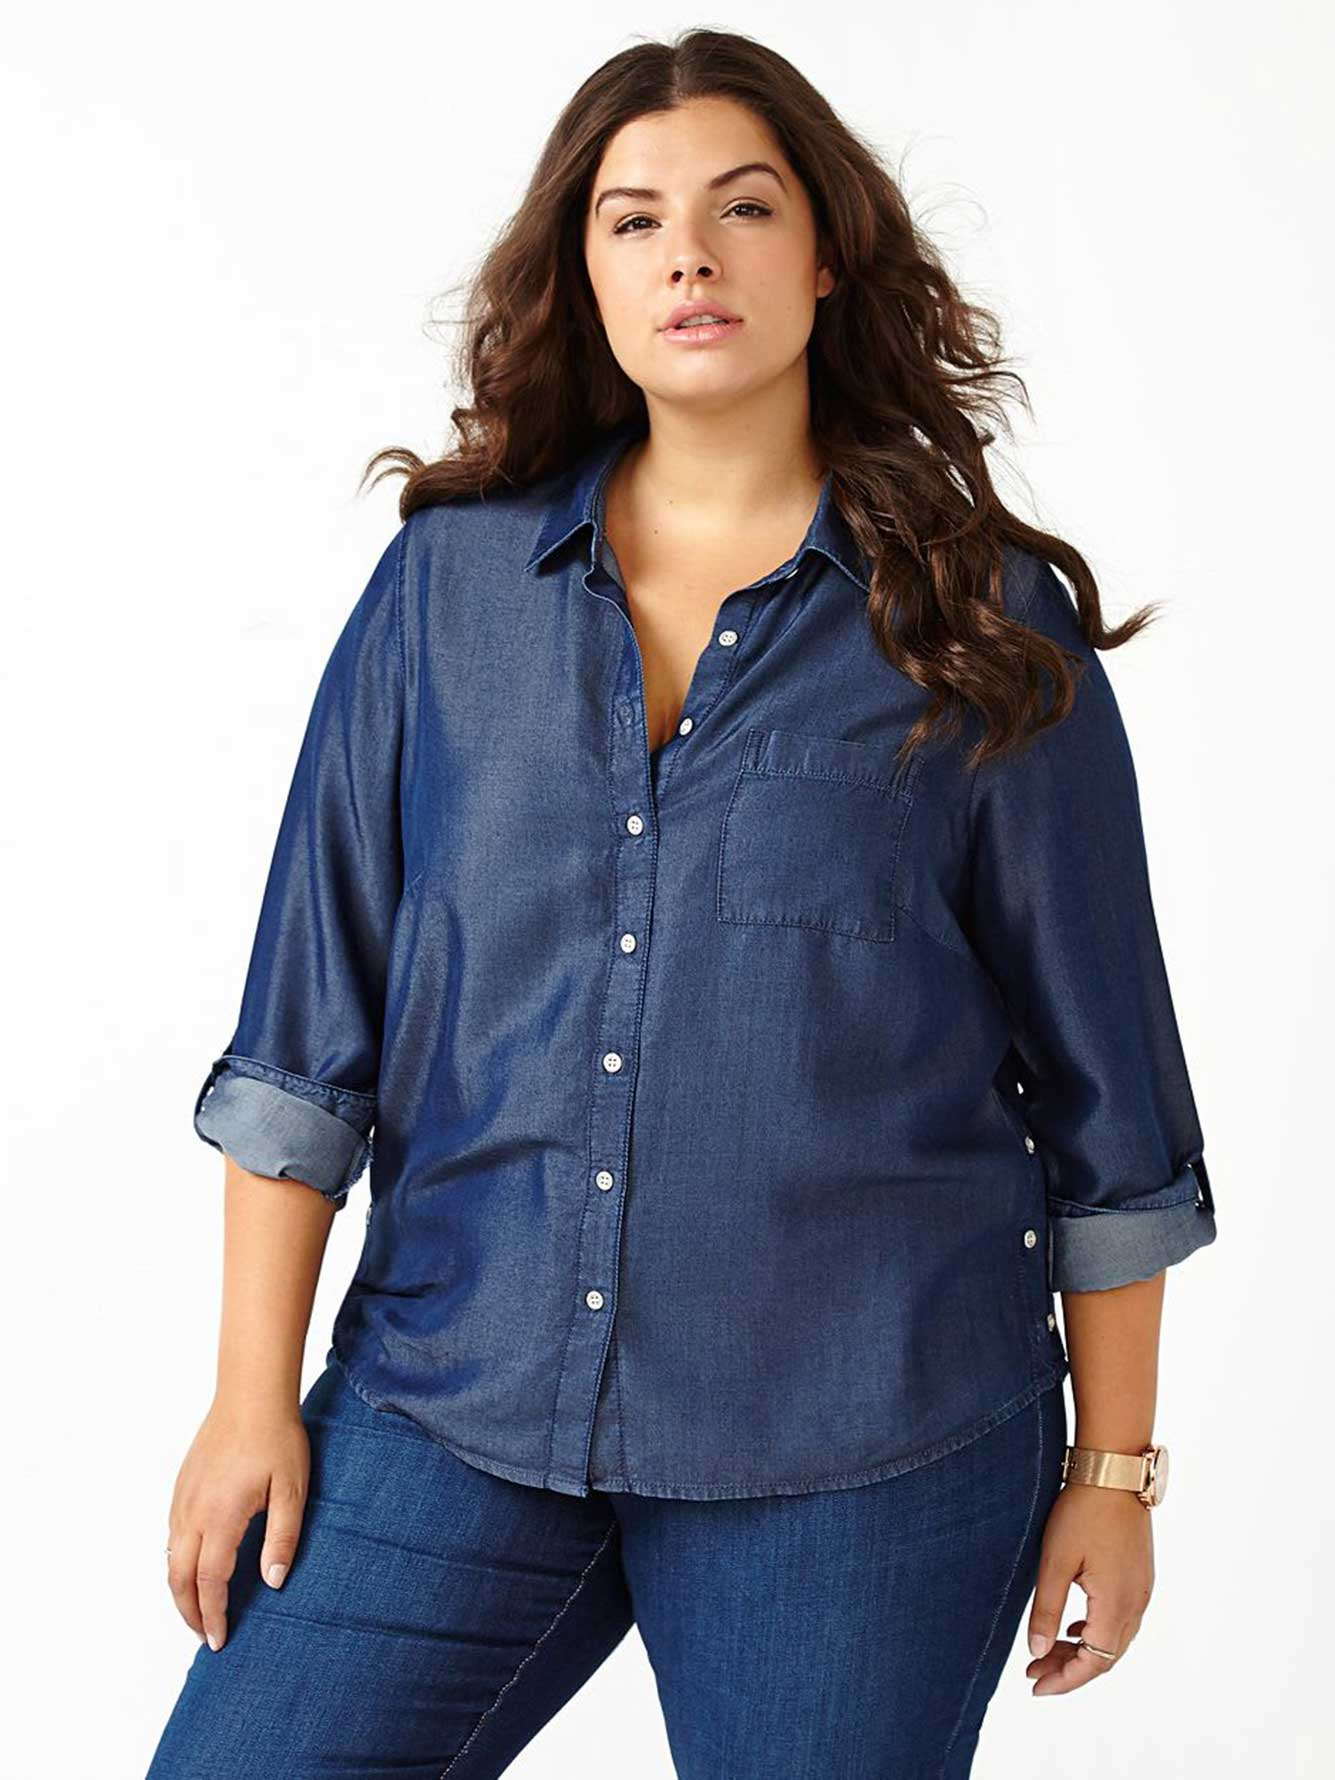 d/c JEANS Long Sleeve Denim Shirt